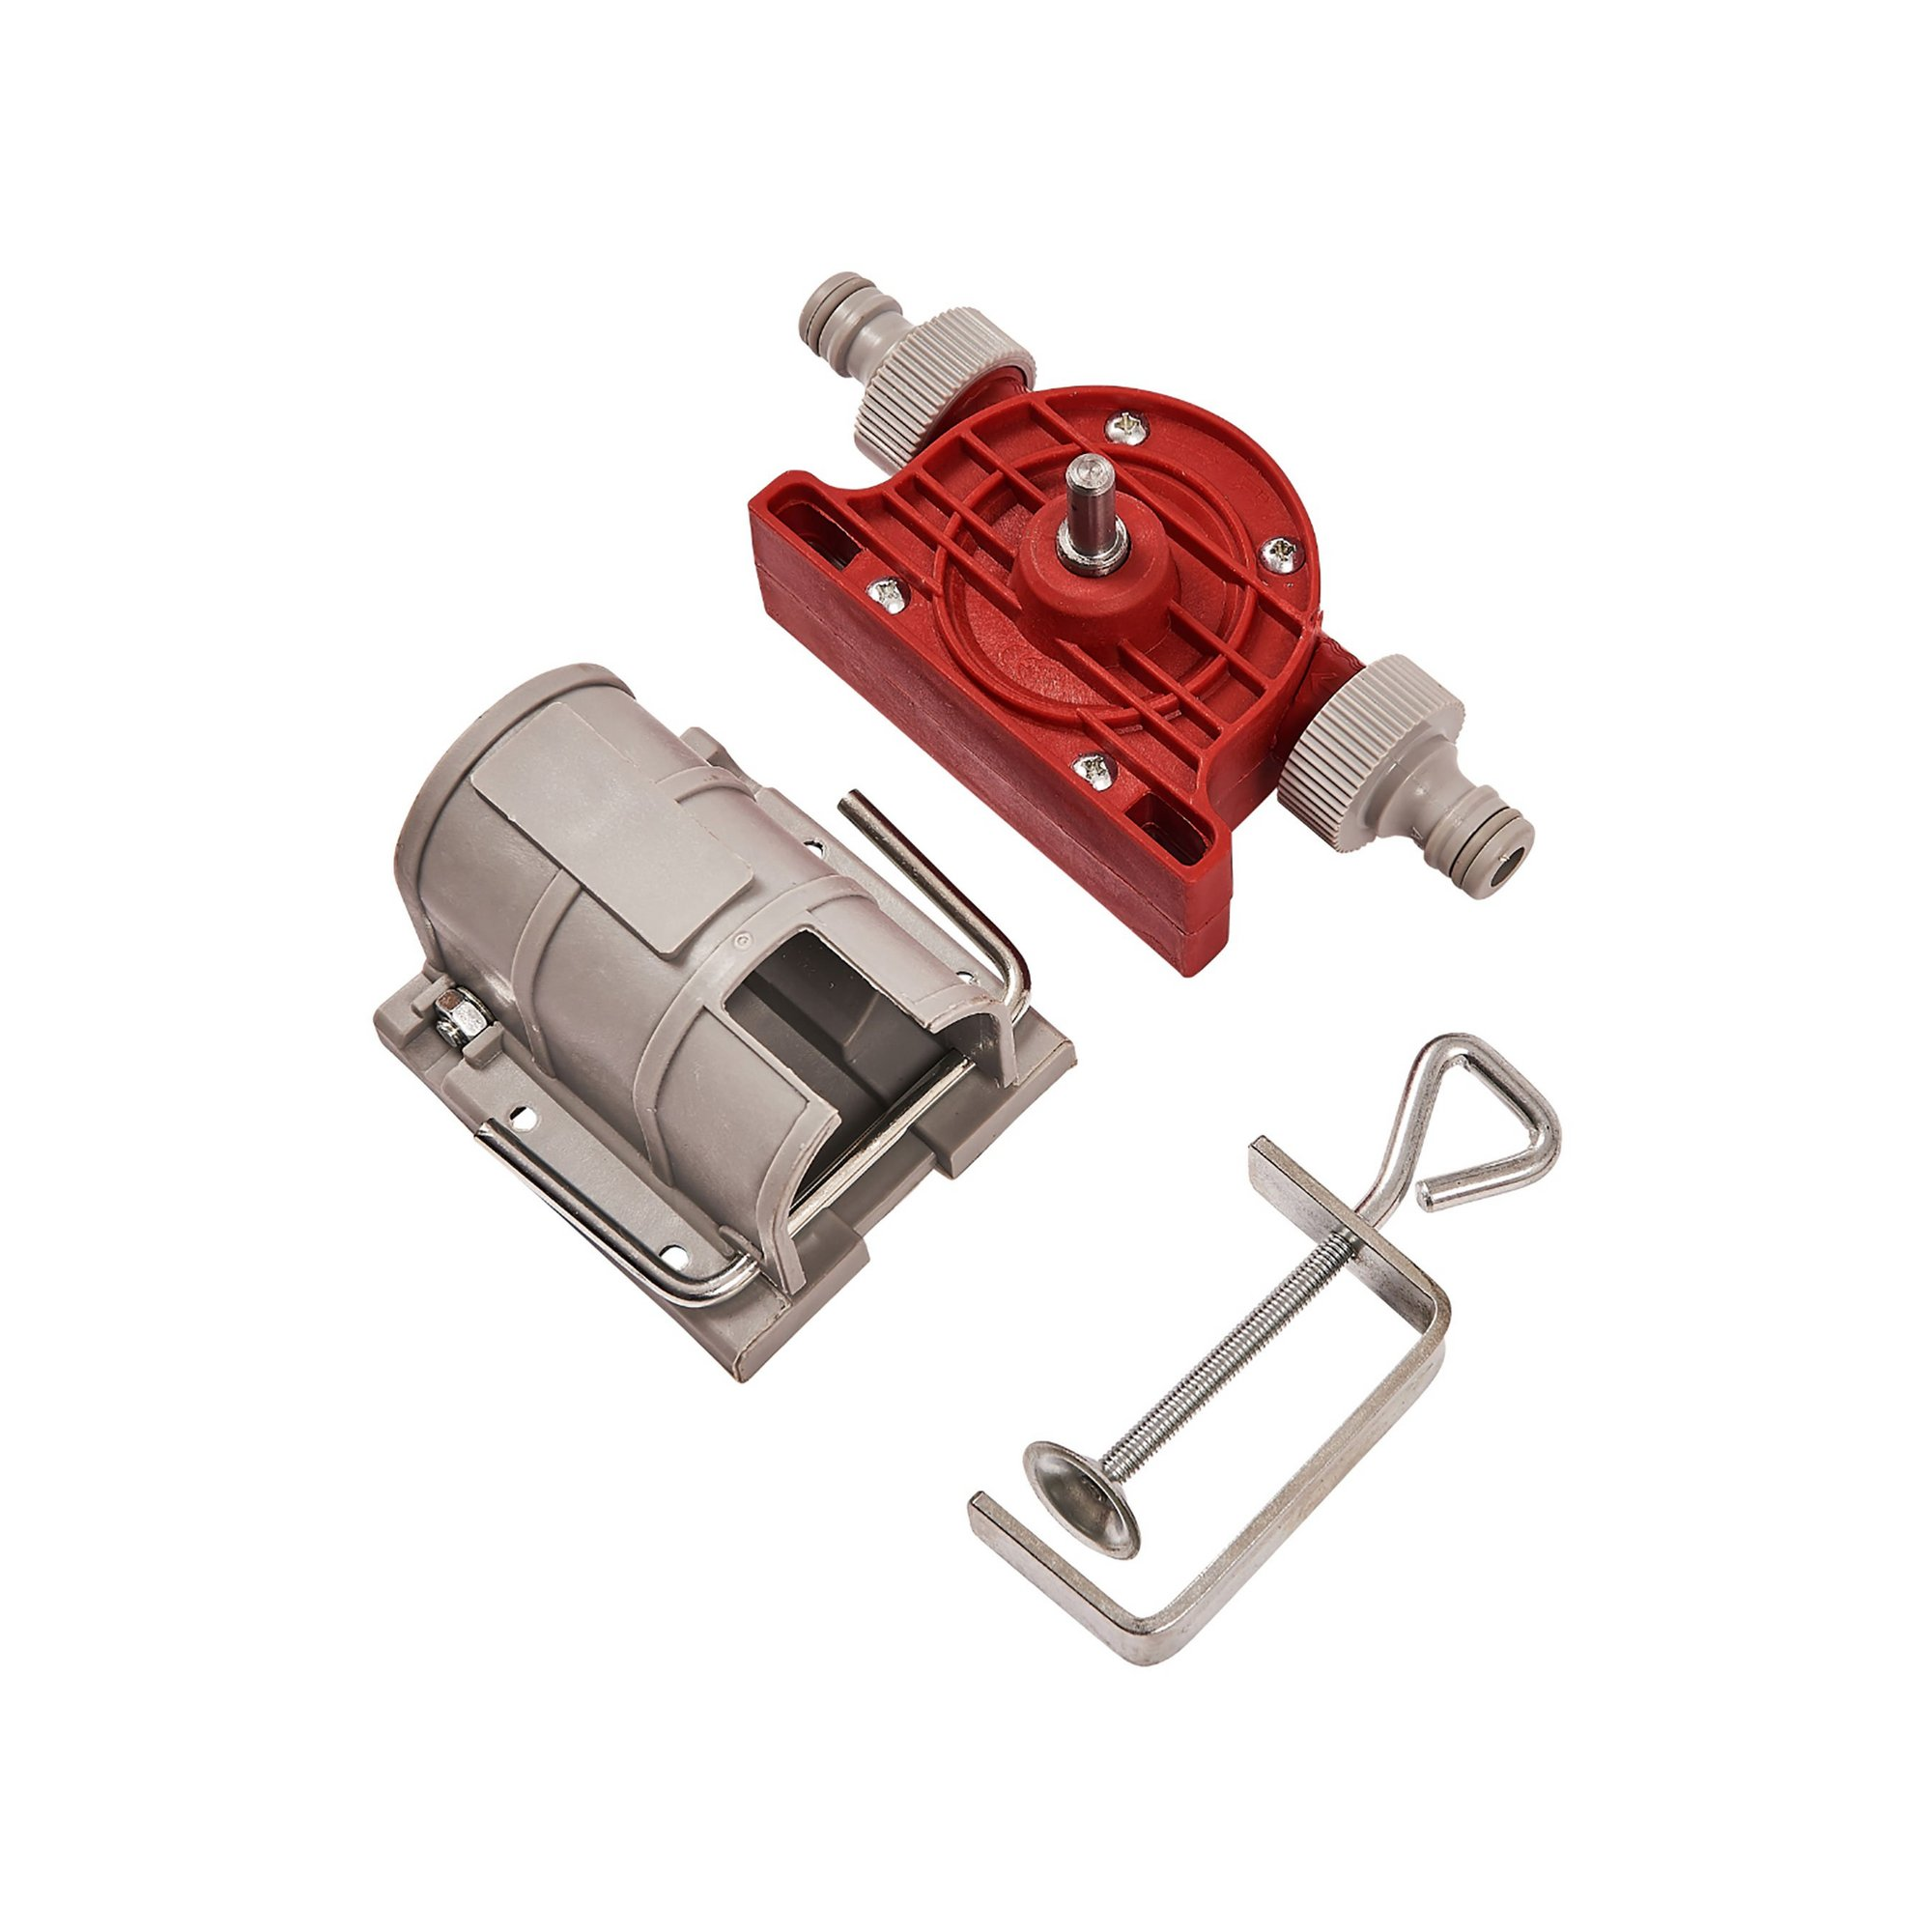 Image of Drill Powered Pump and Clamp